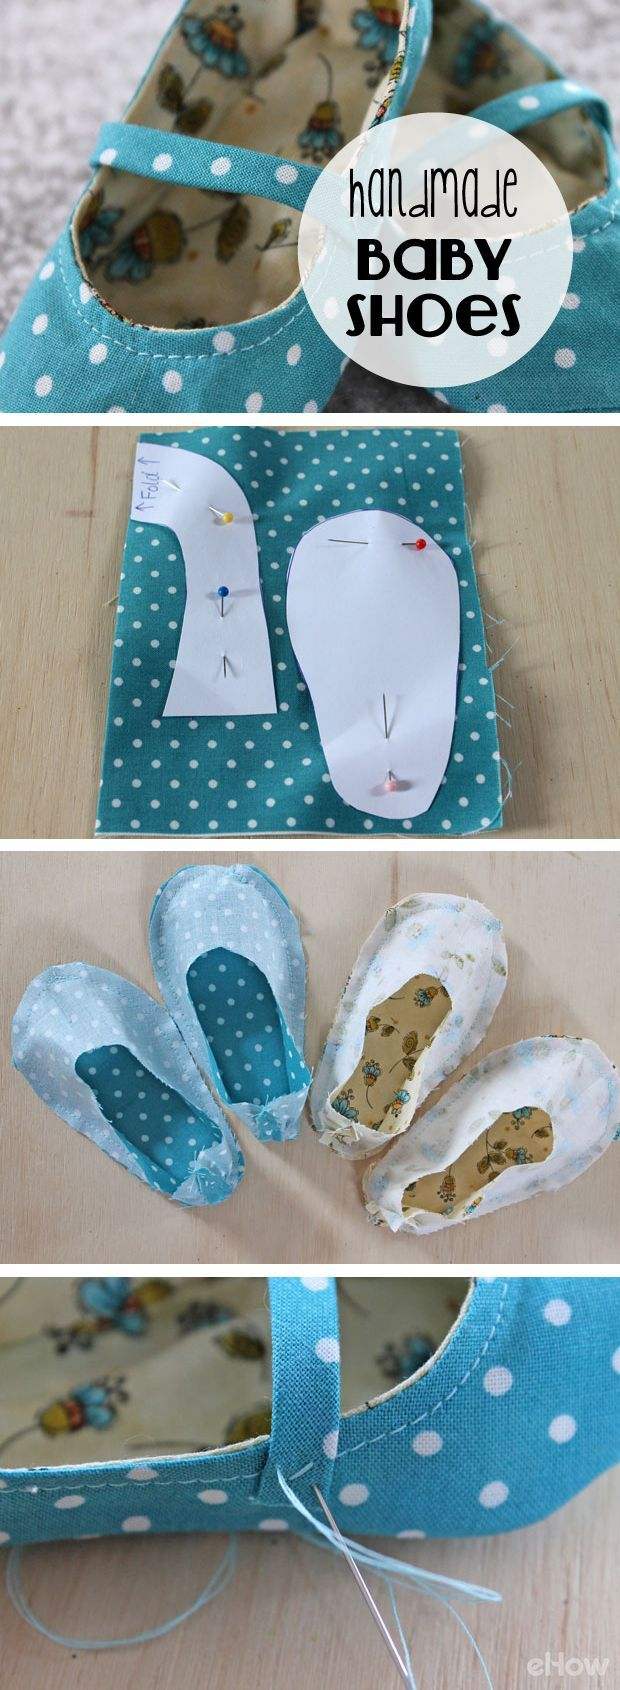 17 Best images about DIY BABY SHOES on Pinterest | Wool, Baby ...